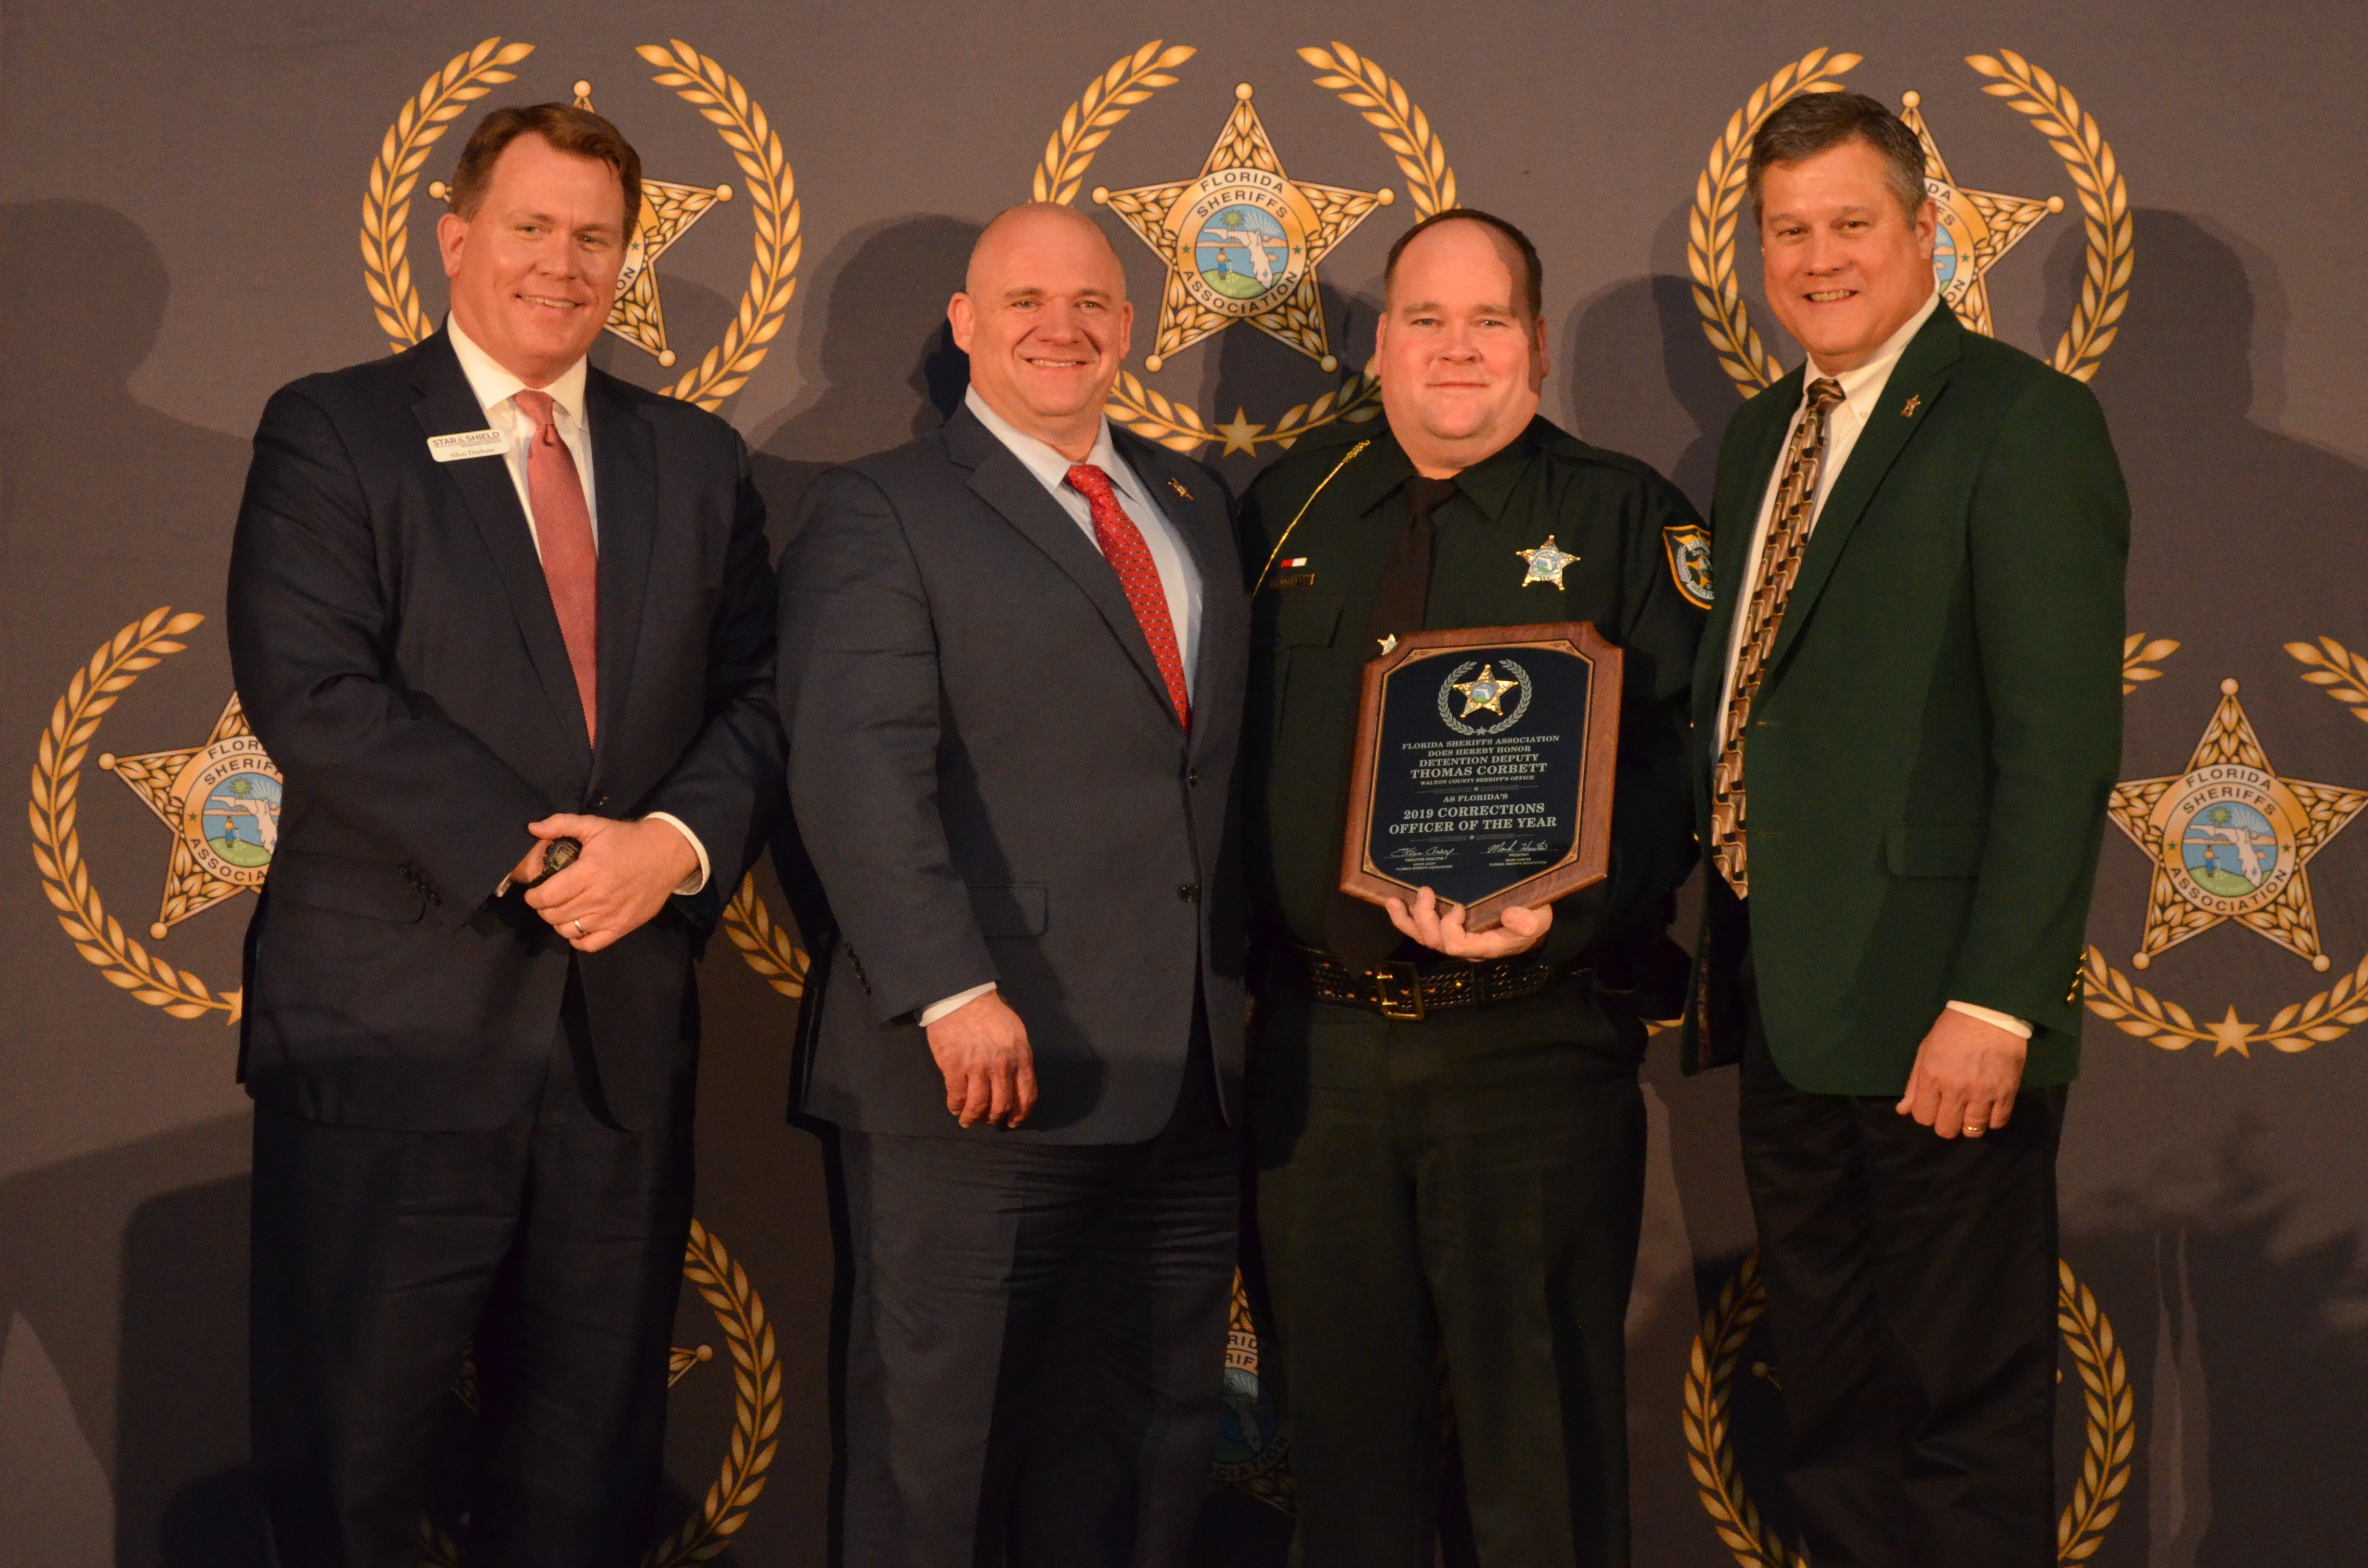 Deputy Corbett receives his award